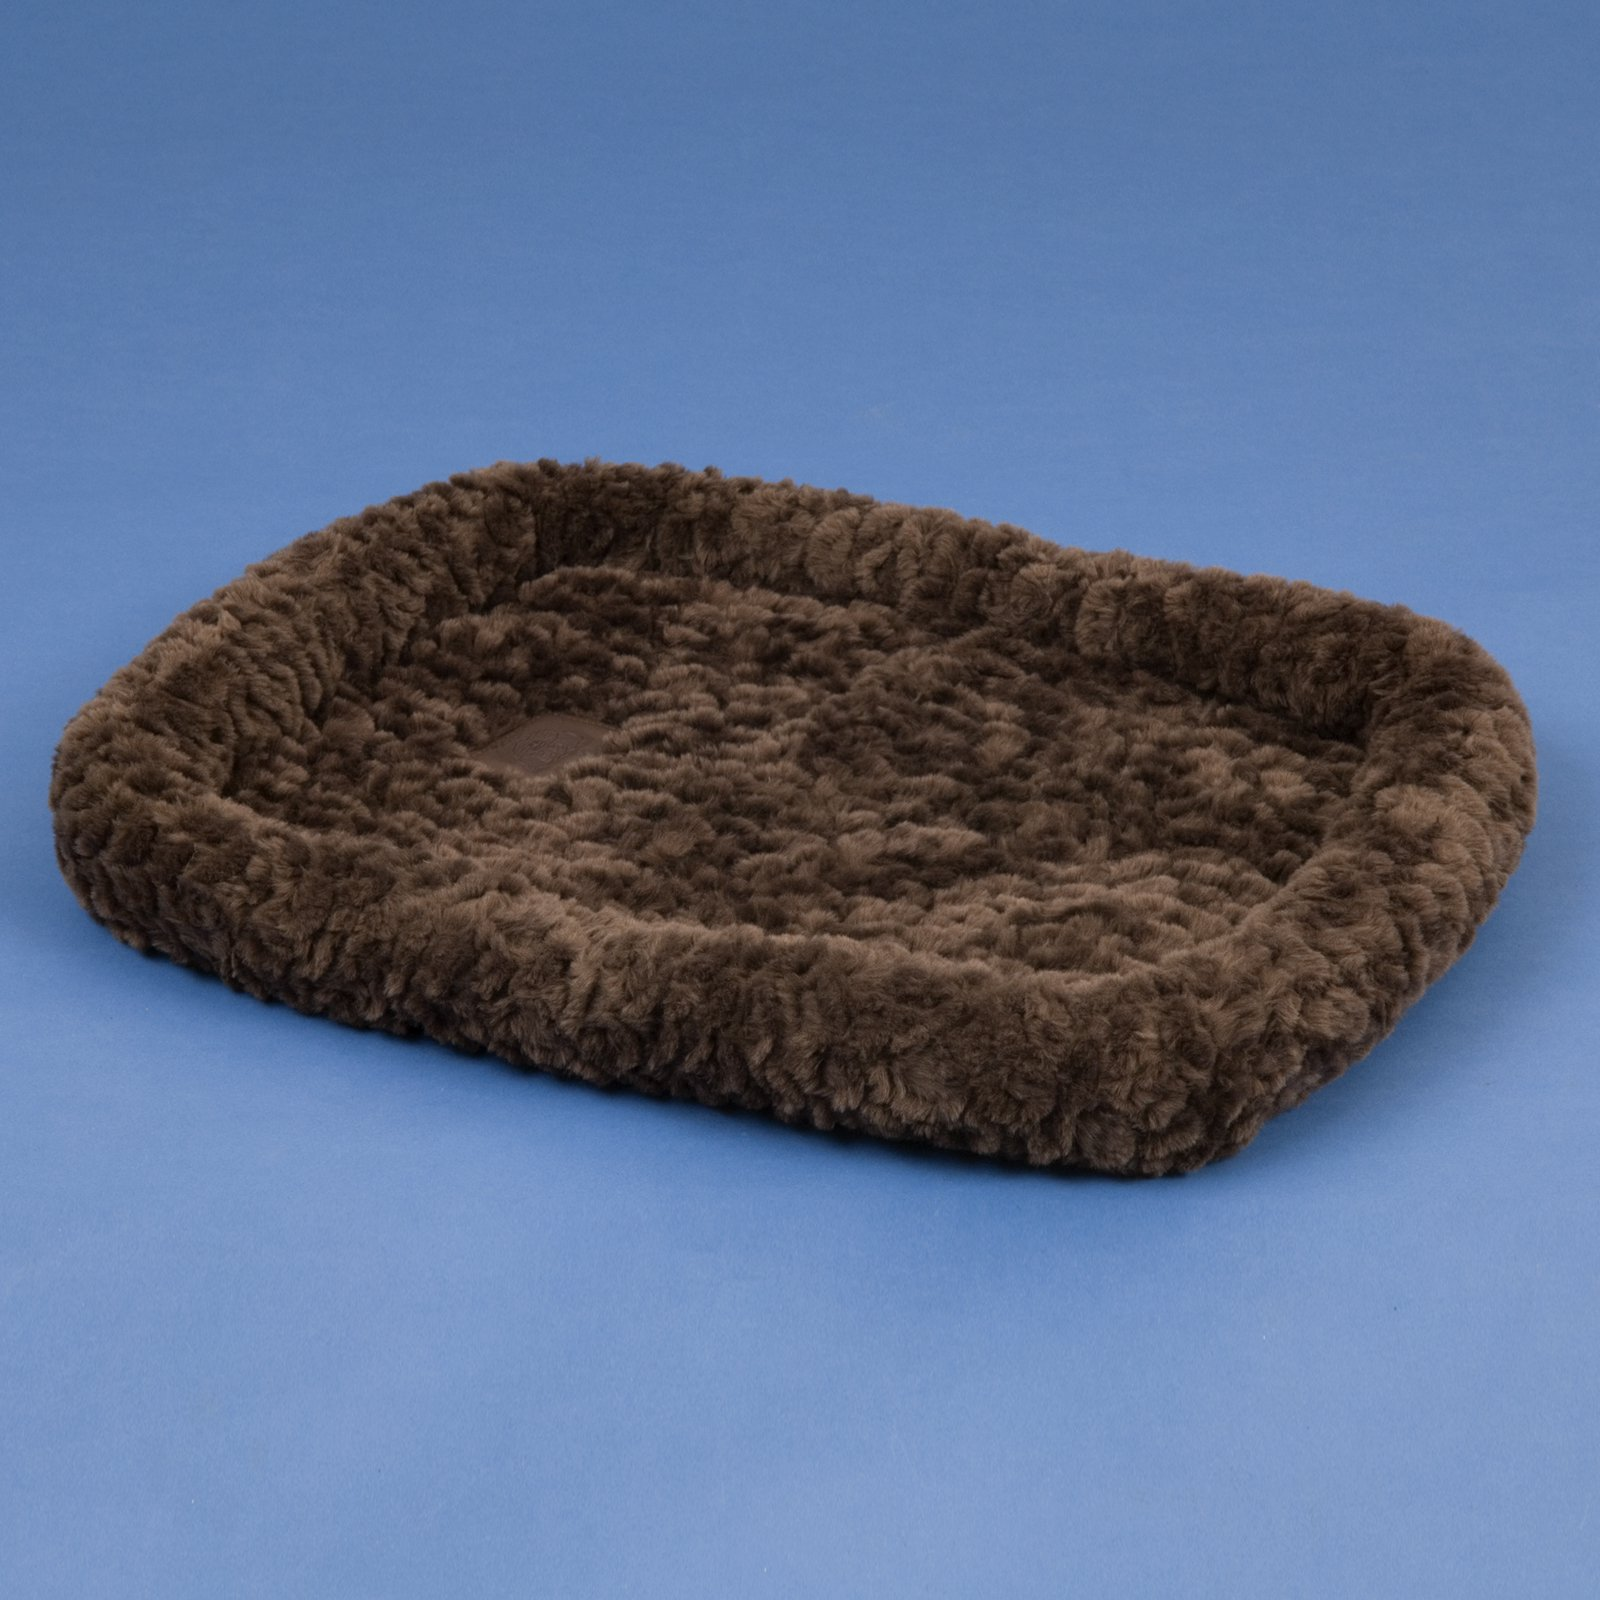 Precision SnooZZy Crate Bed 5000 45x32 - Natural Cozy